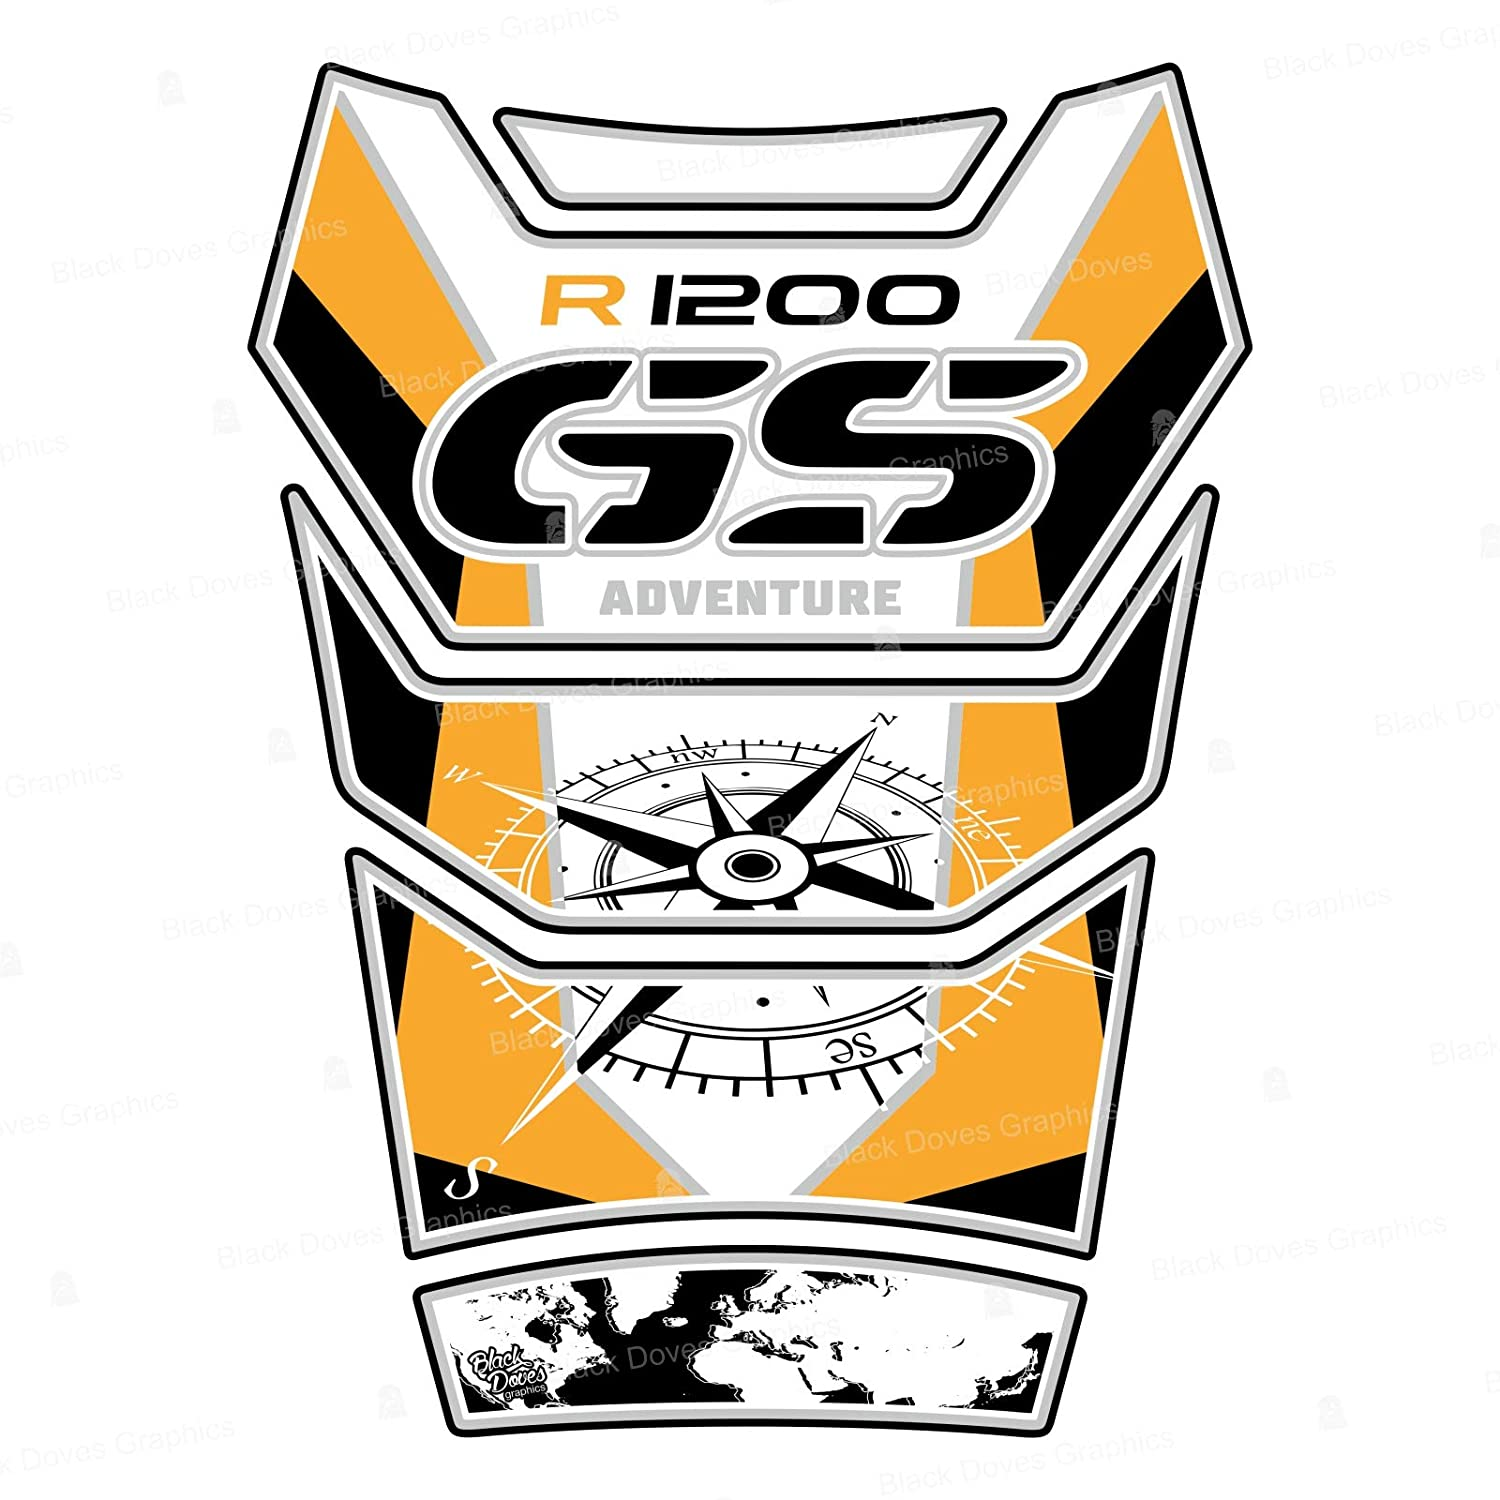 Protection de r/éservoir Compatible pour R1200 GS Adventure 2006-2013 Tank Pad R 1200 ADV 002-4